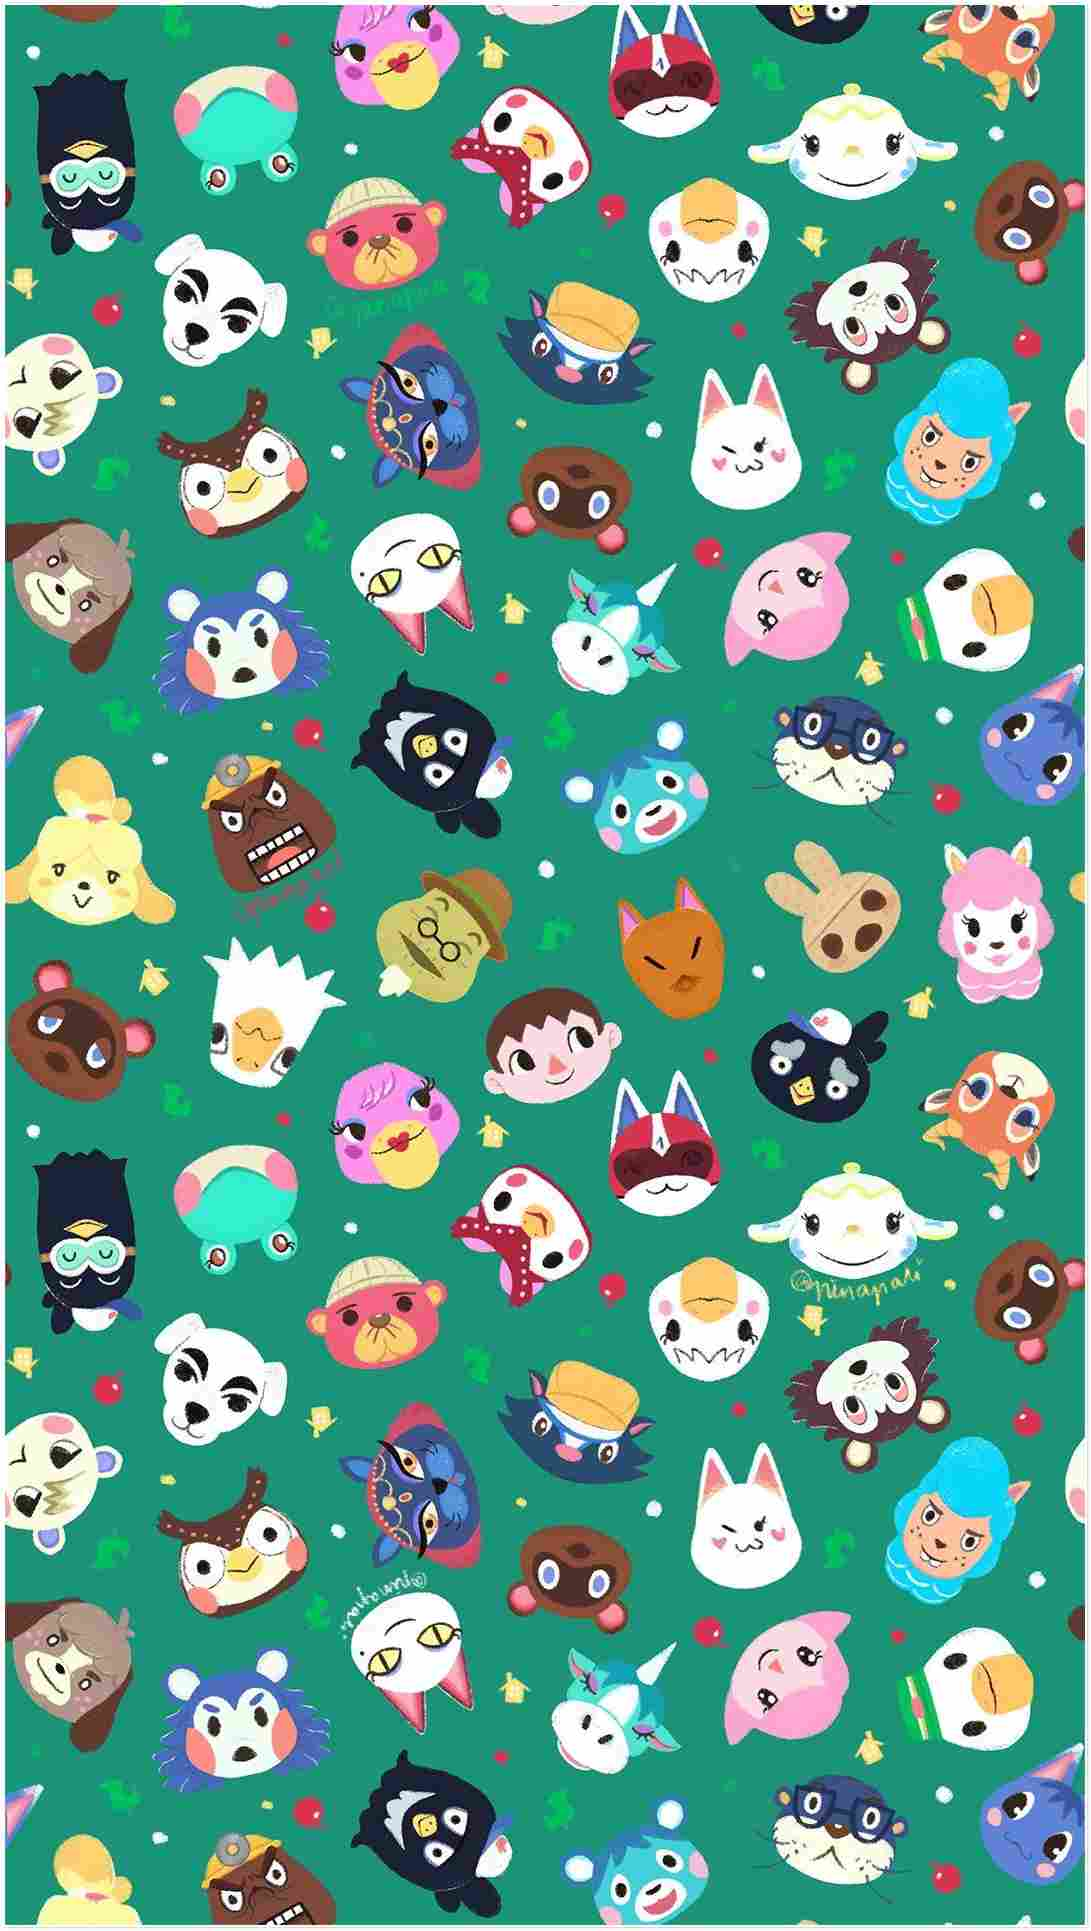 Awesome Animal Crossing Wallpaper Download Free Our - Animal Crossing Wallpaper Iphone , HD Wallpaper & Backgrounds